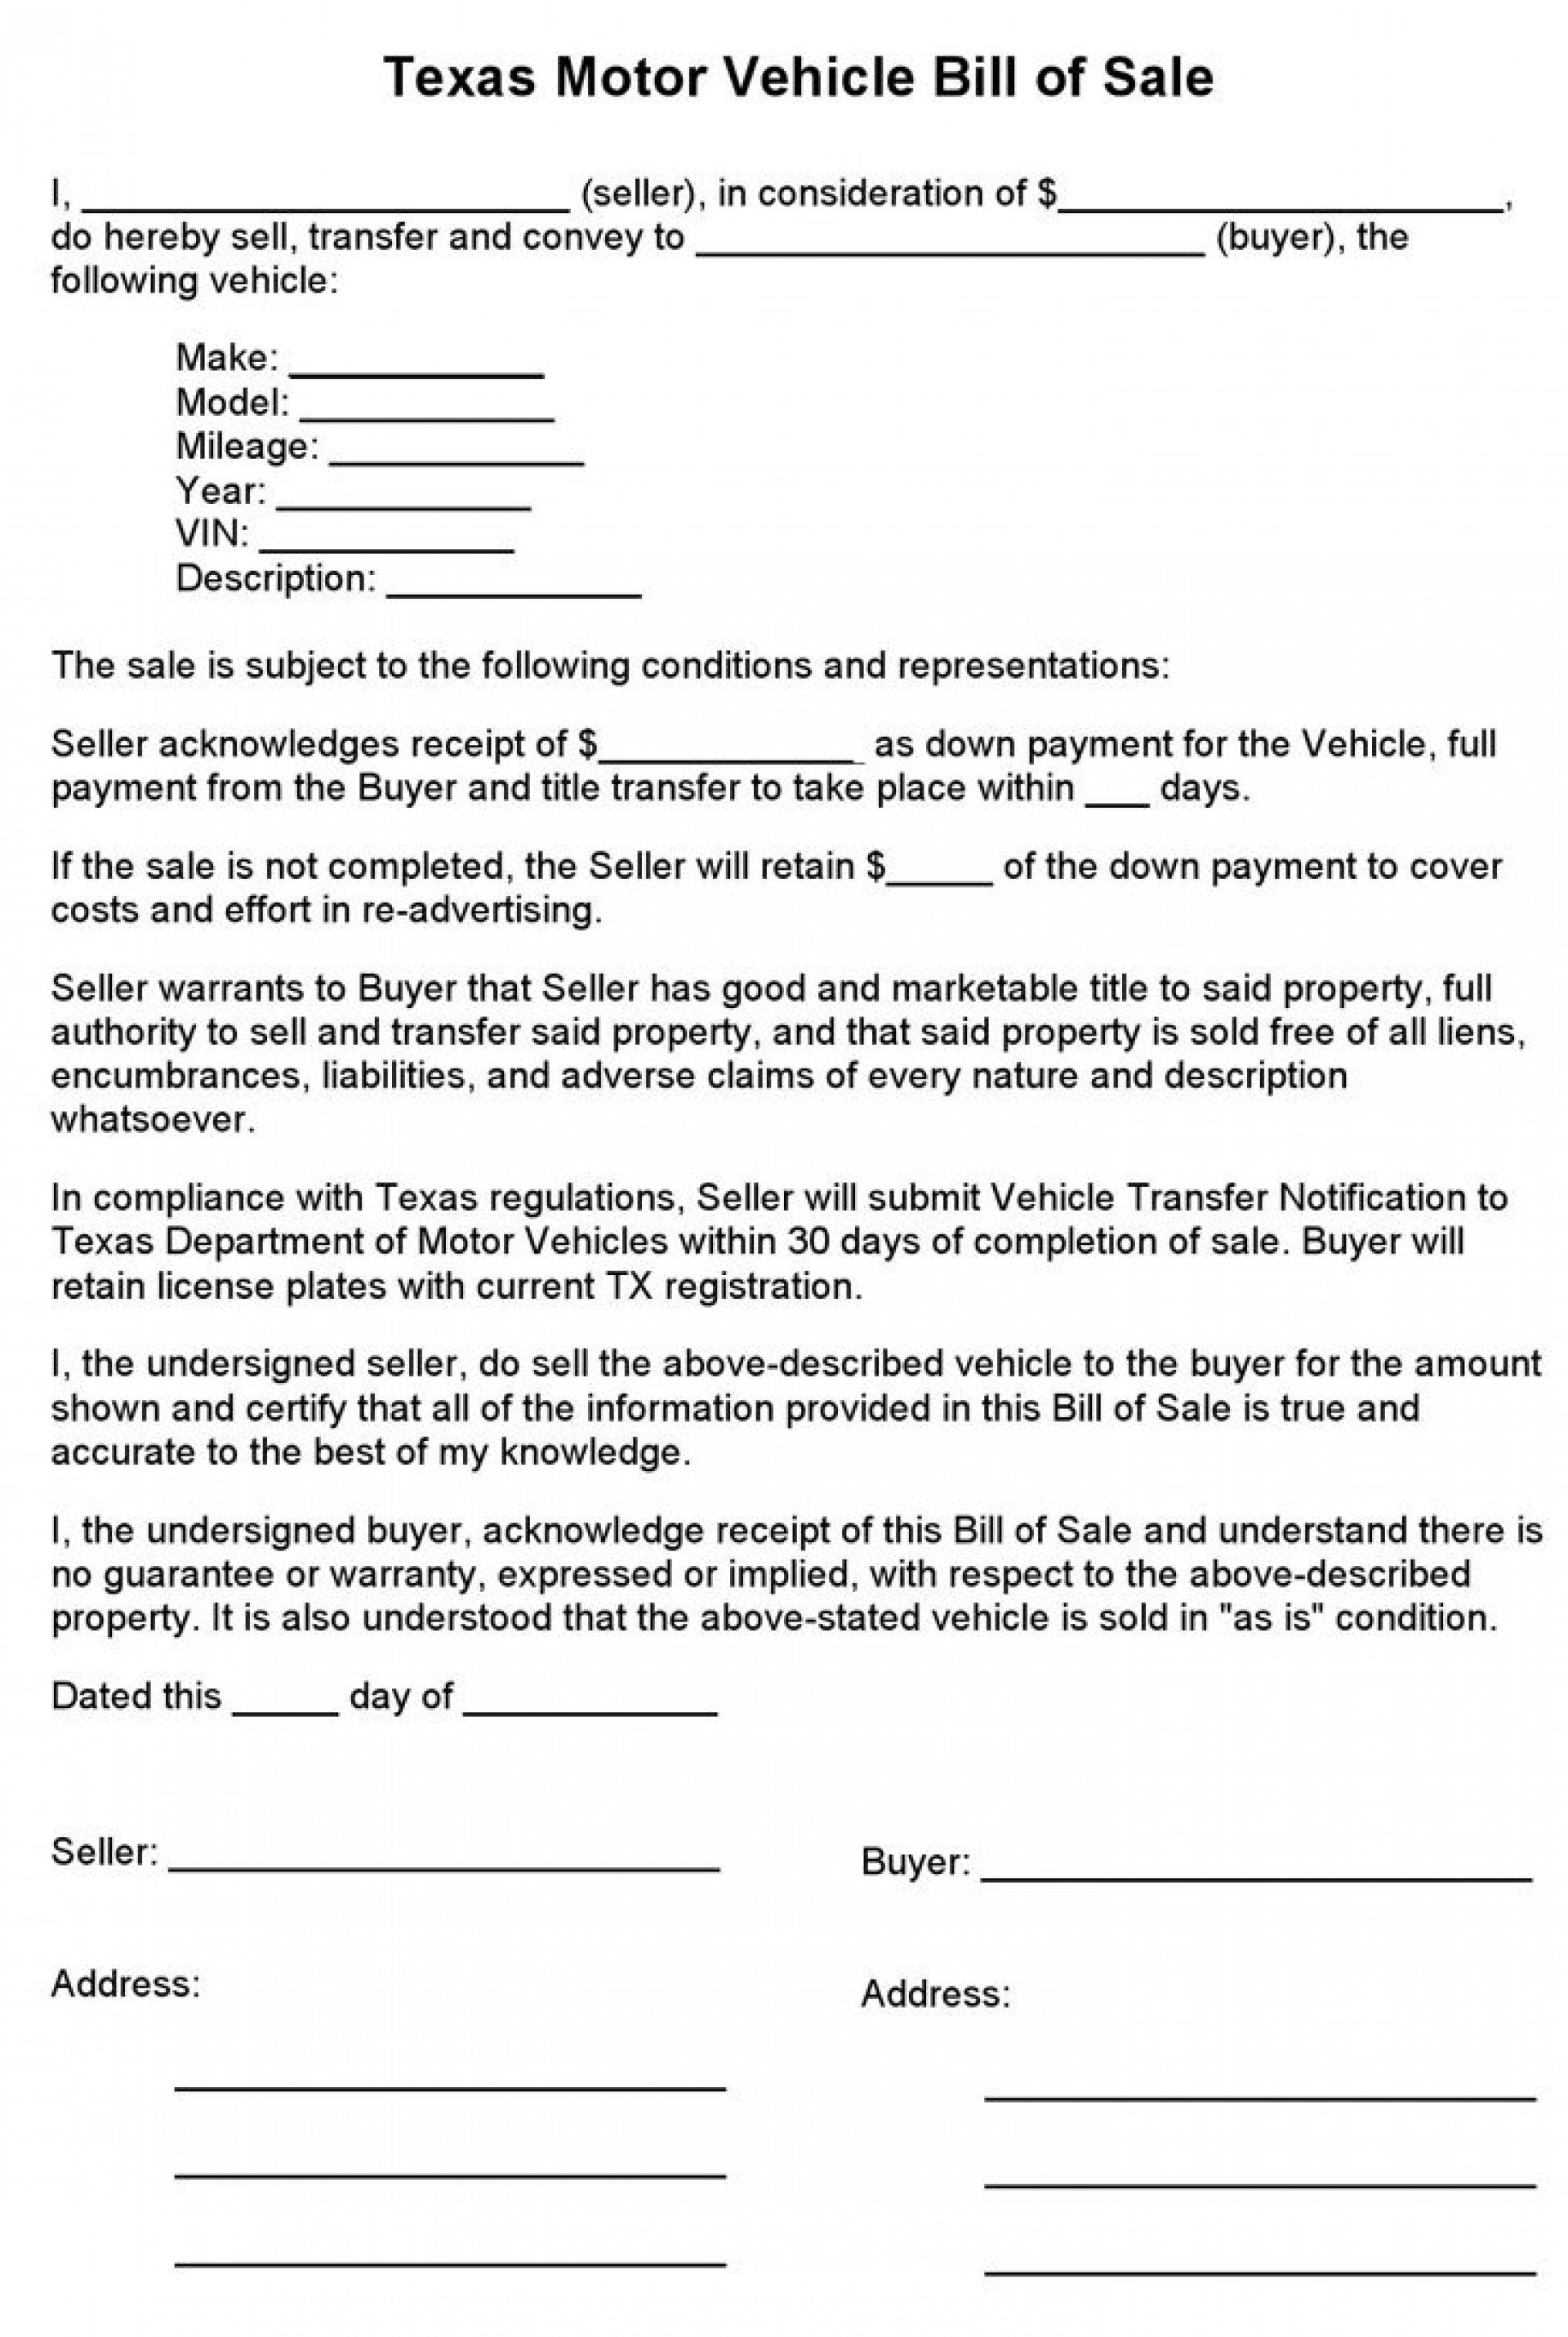 001 Fearsome Bill Of Sale Texa Template Highest Clarity  Motor Vehicle Form Free Printable1920